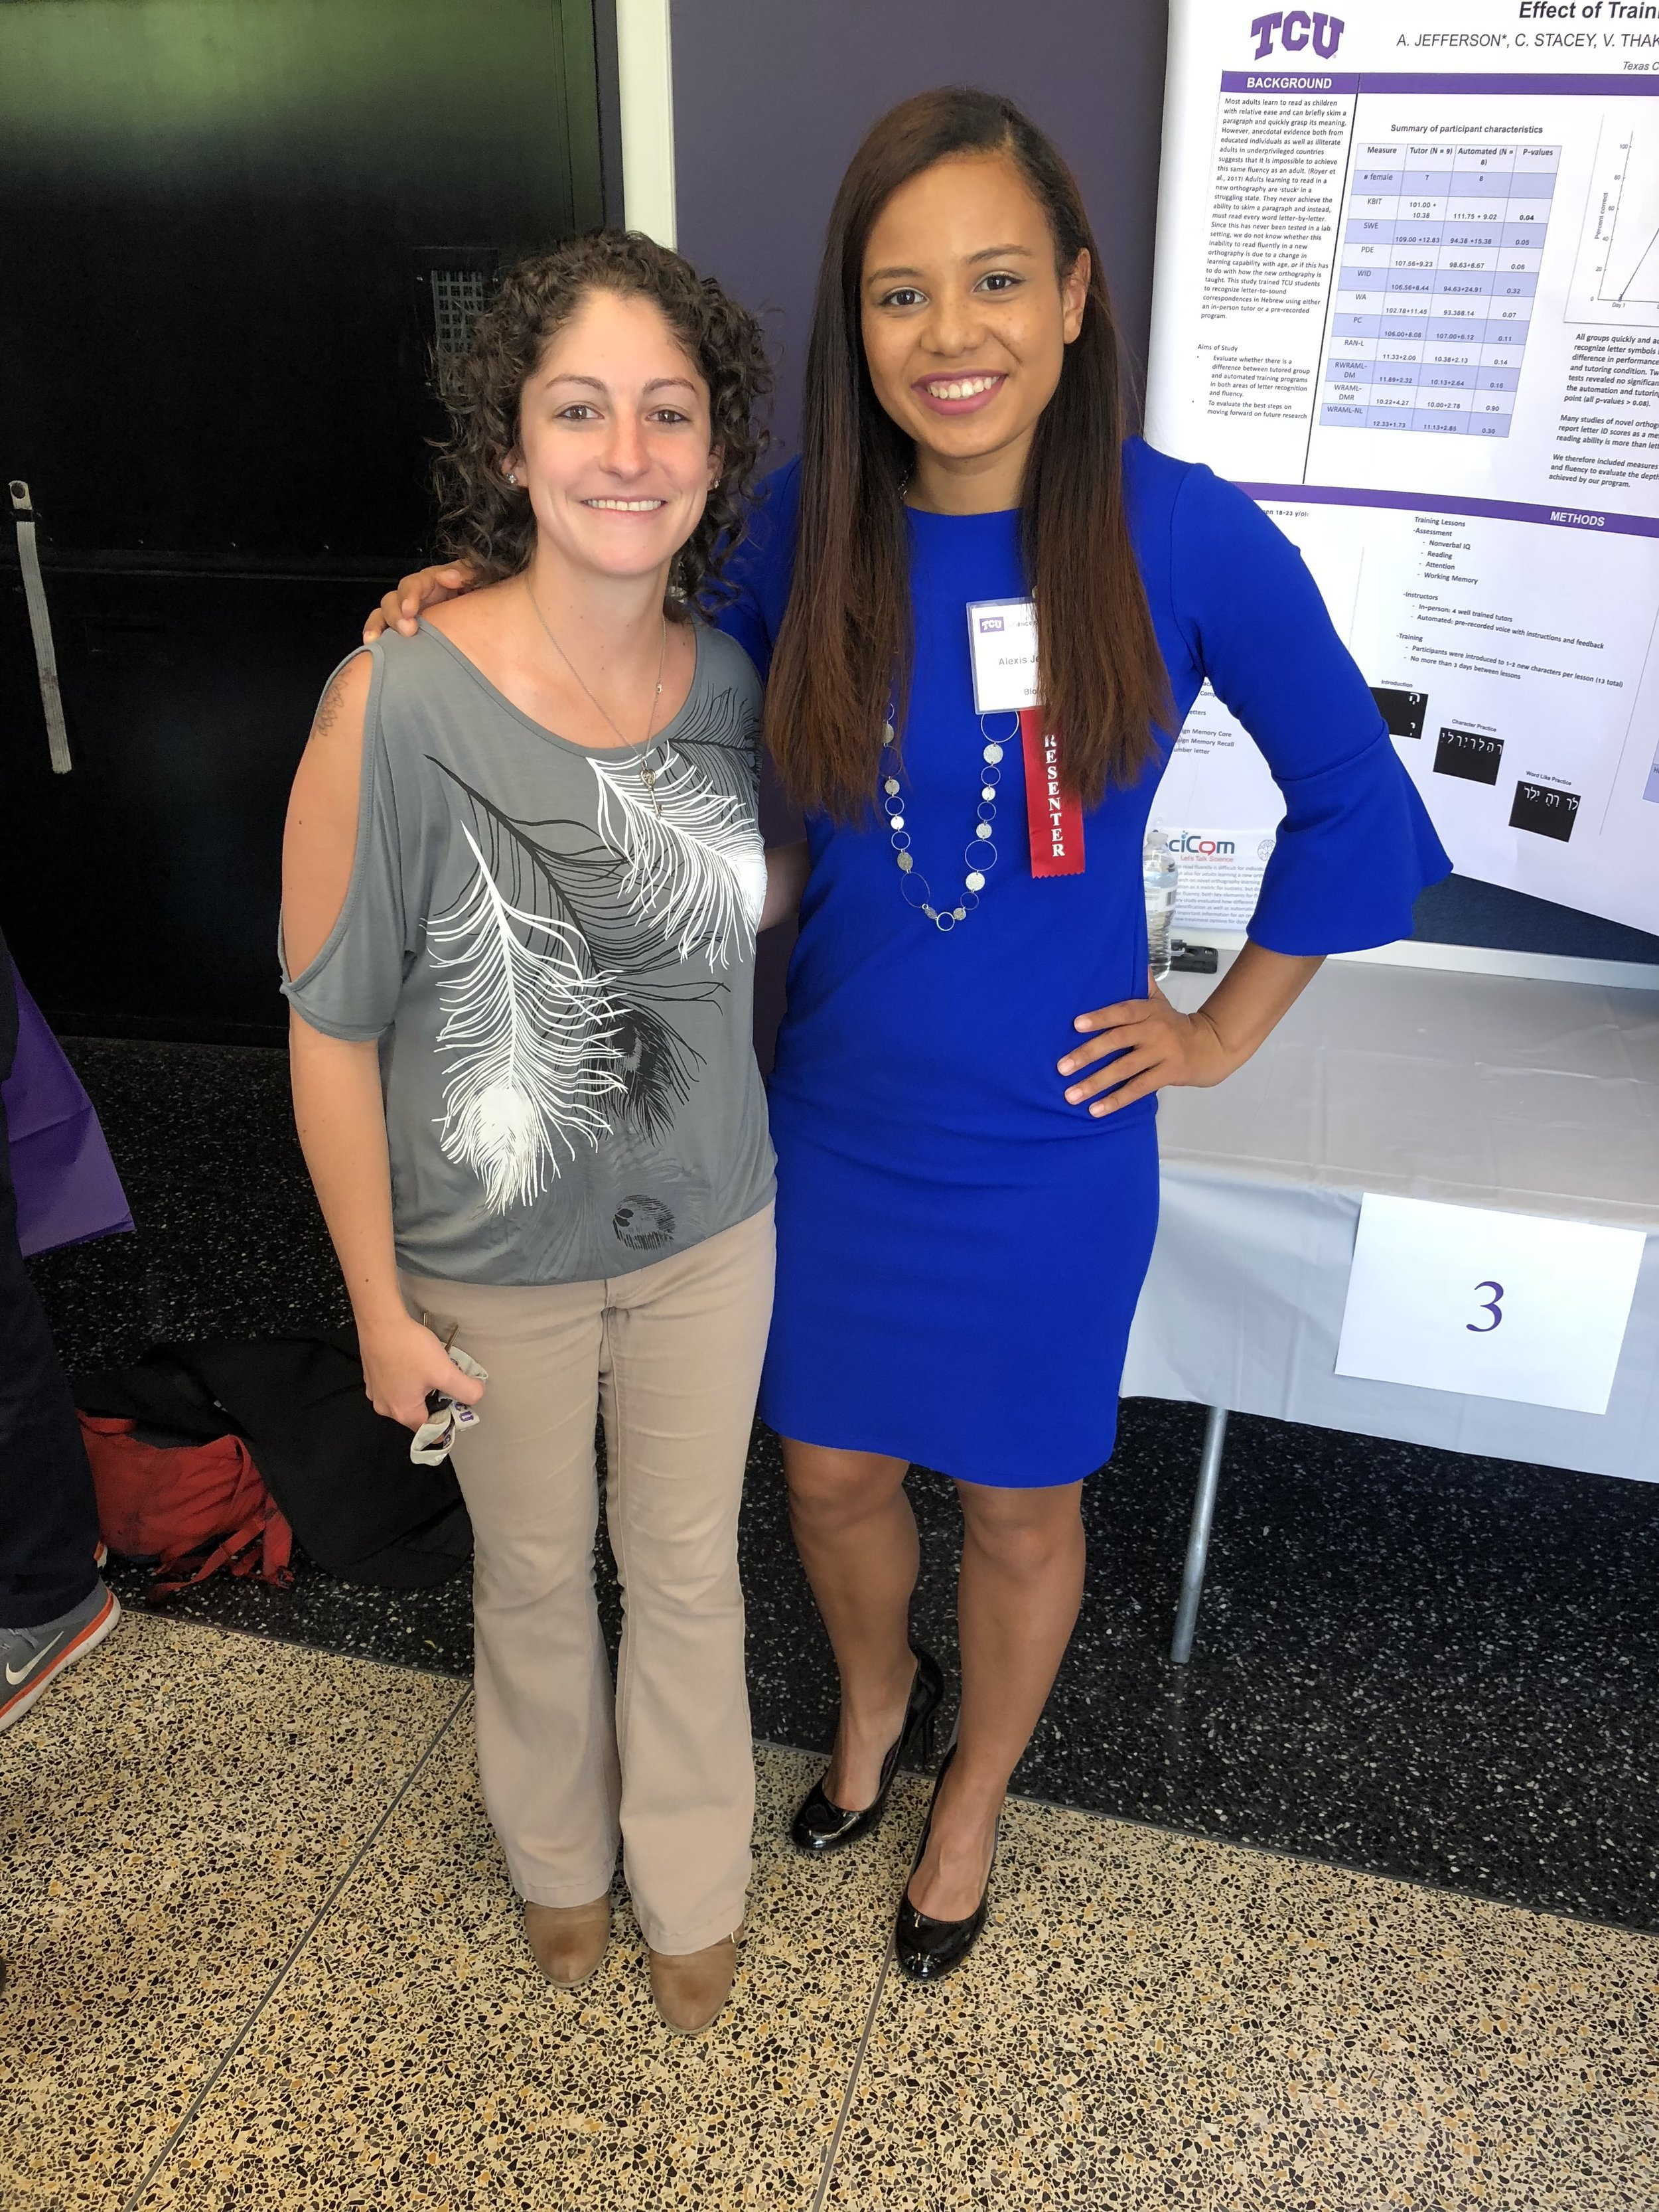 The Centanni Lab's first research poster! - Lab director Tracy Centanni (left) with lab undergrad Alexis Jefferson (right) as she presents the first research poster out of the lab! Alexis received a TCU Students in Research grant this year to study the effect of training approach on novel letter acquisition. The poster was very well received by the community.-April 2018